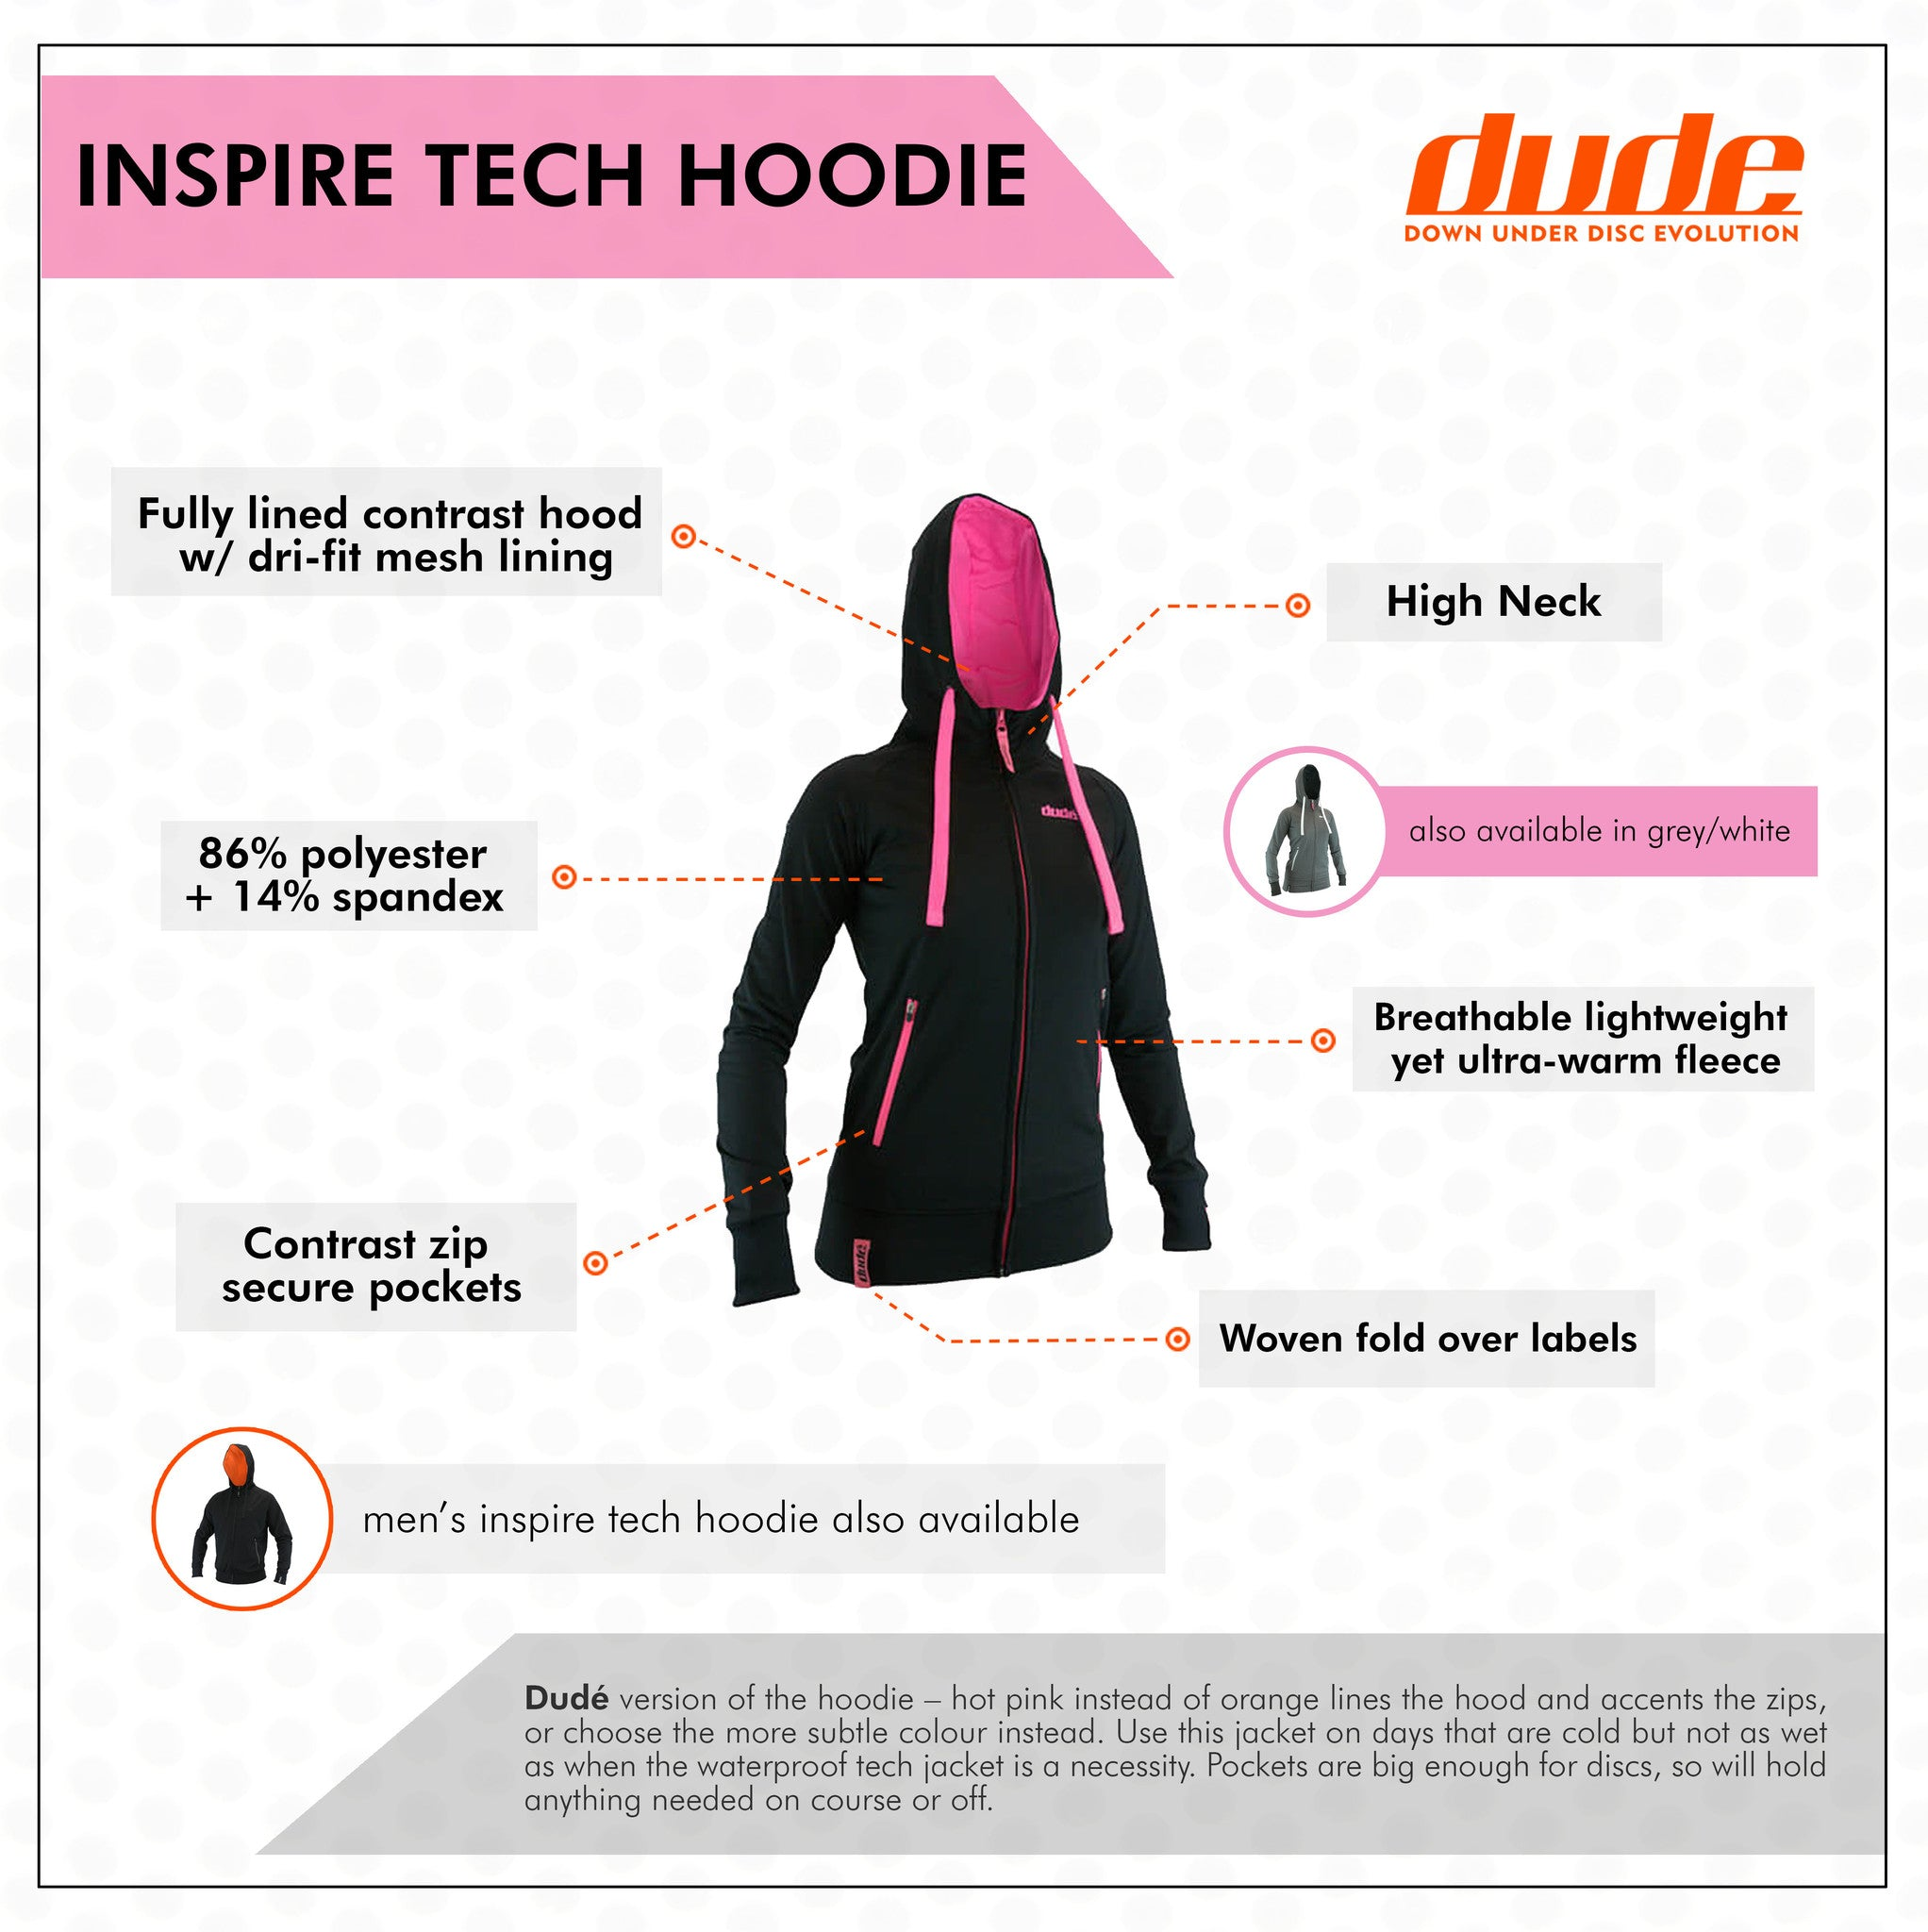 An image showing Ladies Inspire Tech Hoodie with Big pocket  enough for dude discs.